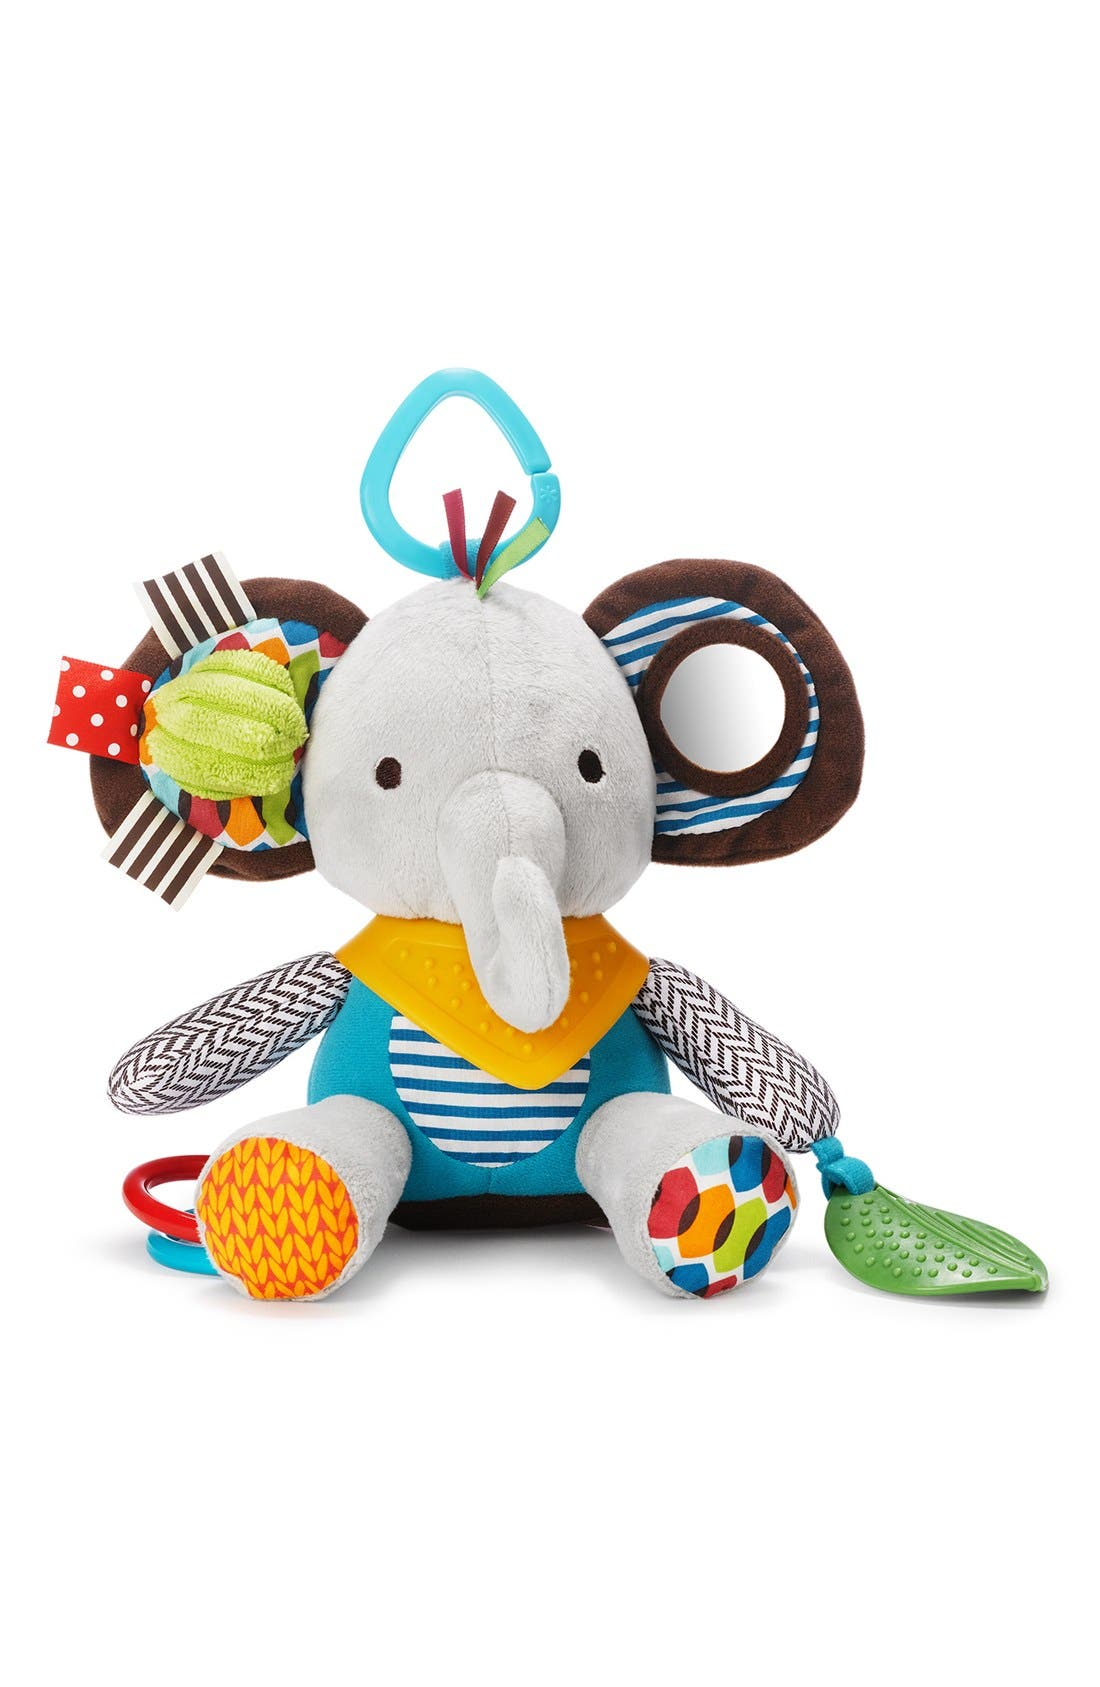 Skip Hop 'Bandana Buddies' Activity Elephant